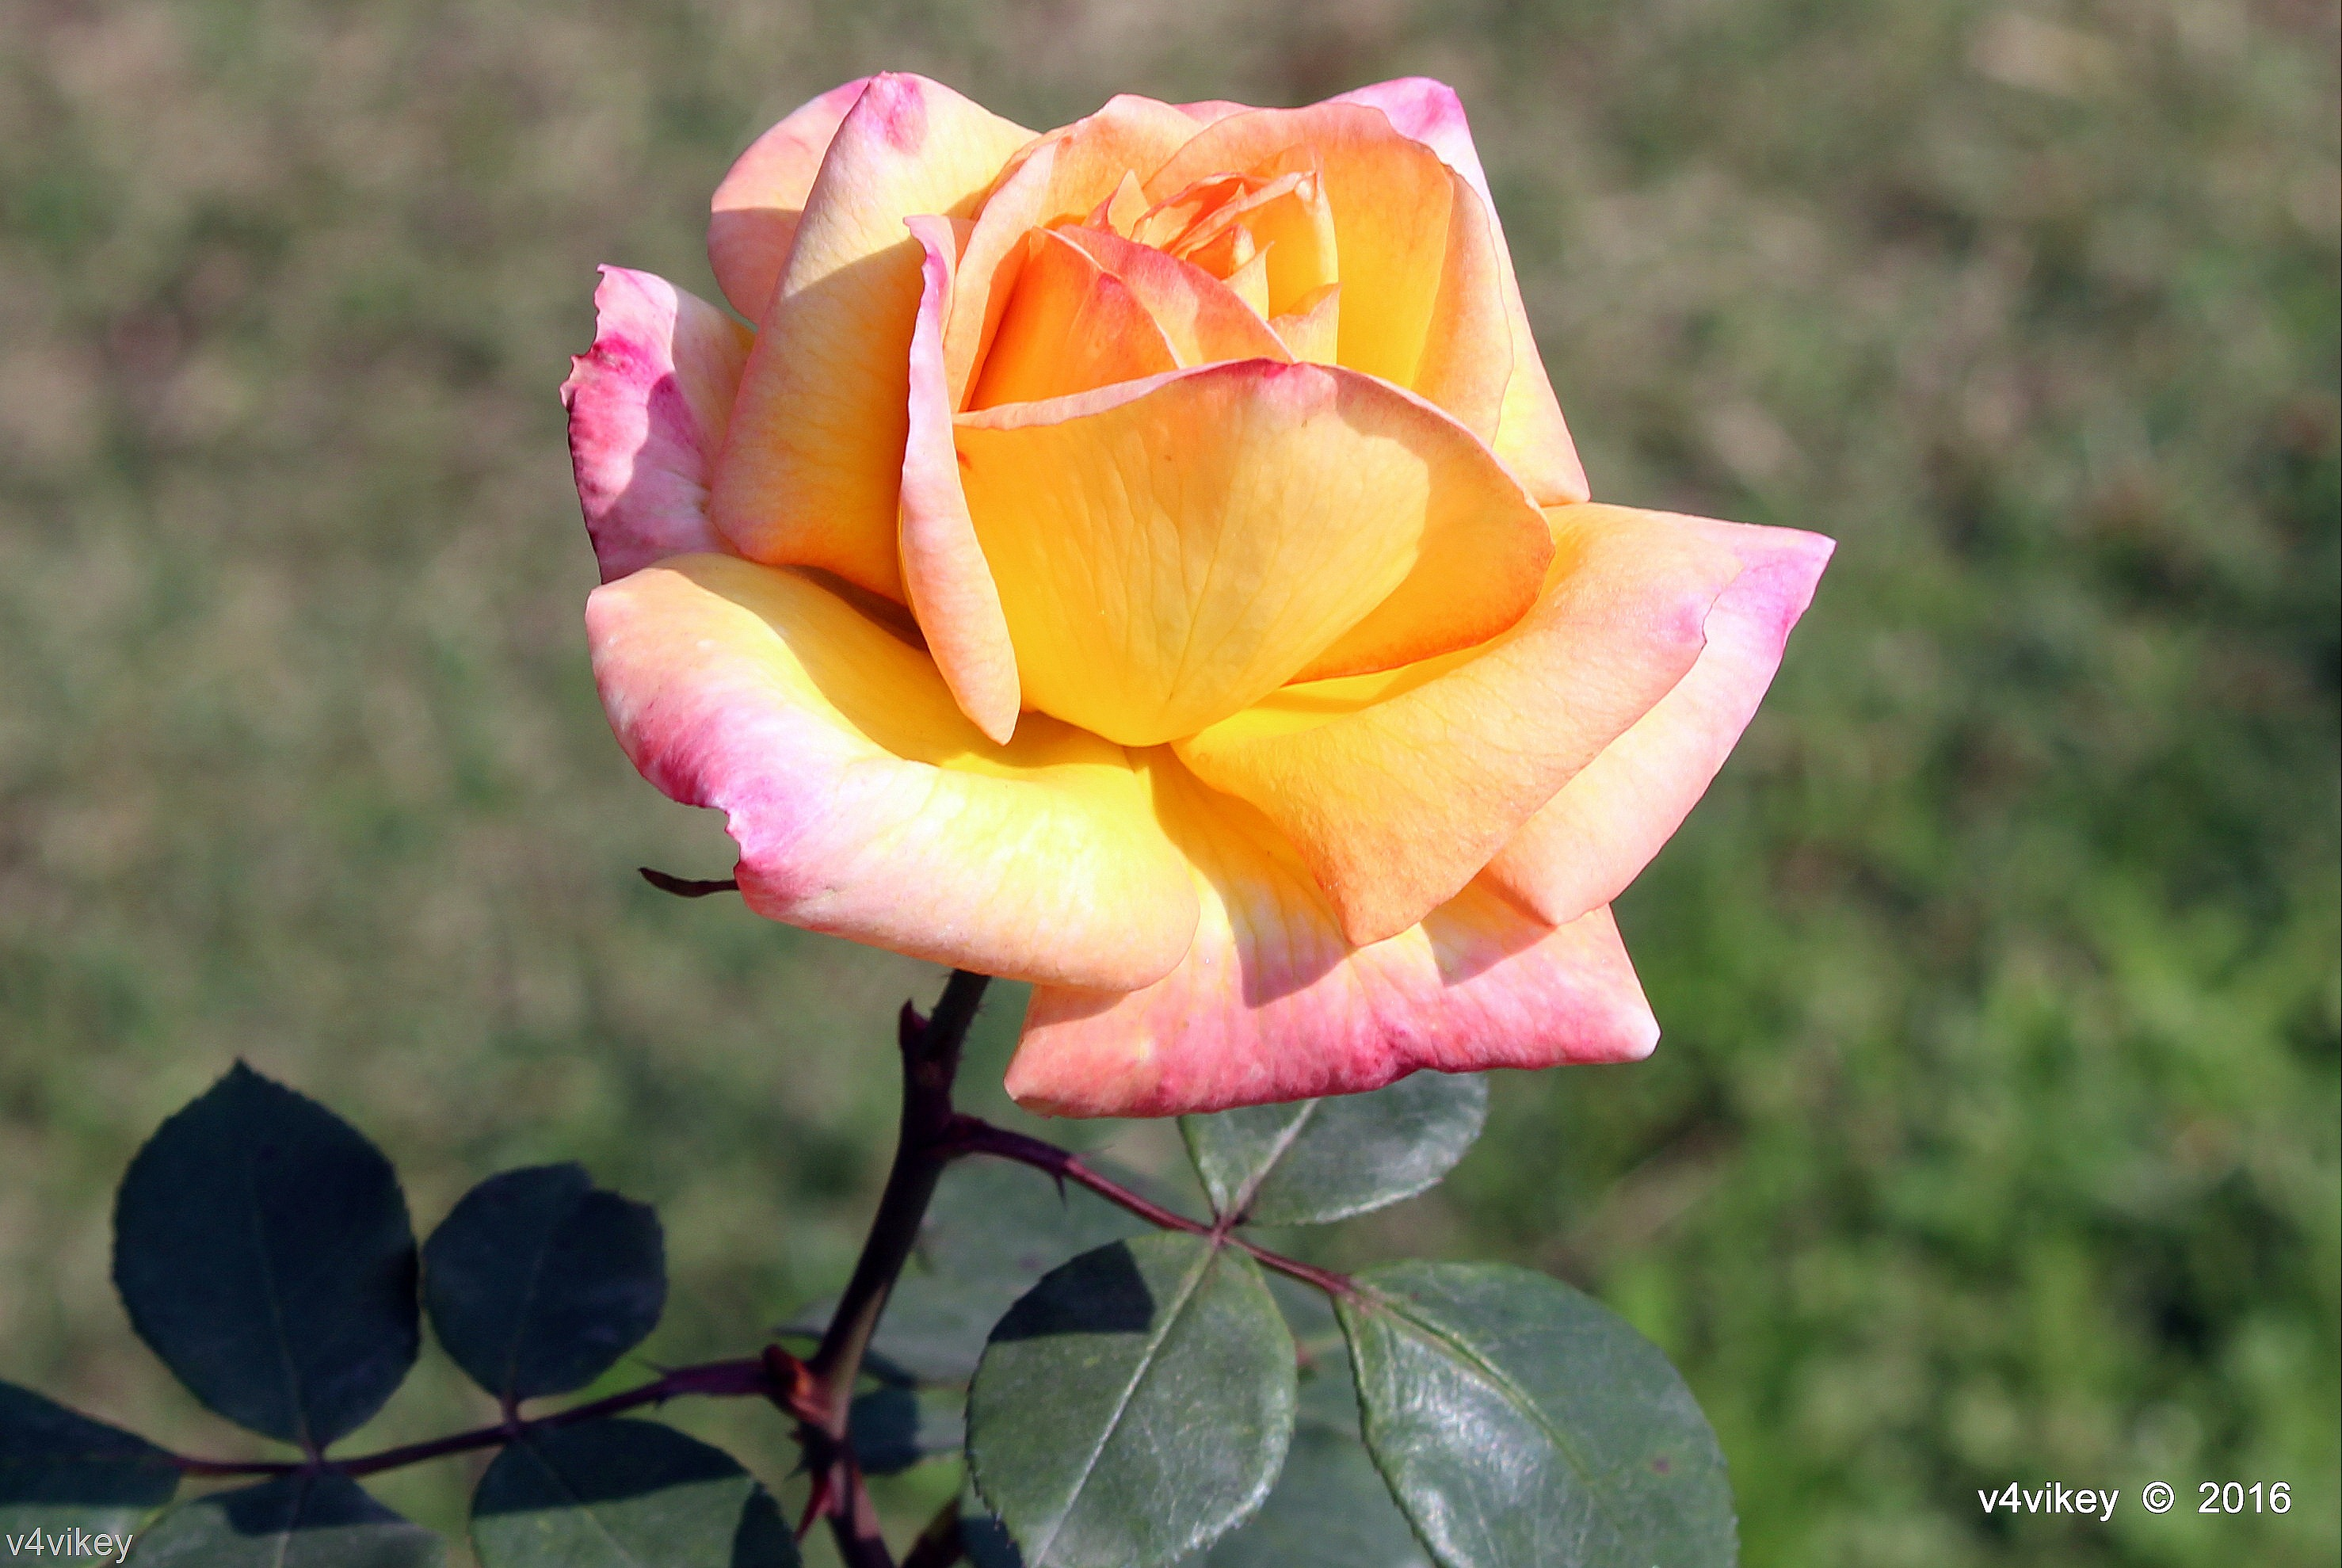 Double Shaded Pink Yellow Rose Flower Wallpaper Tadka